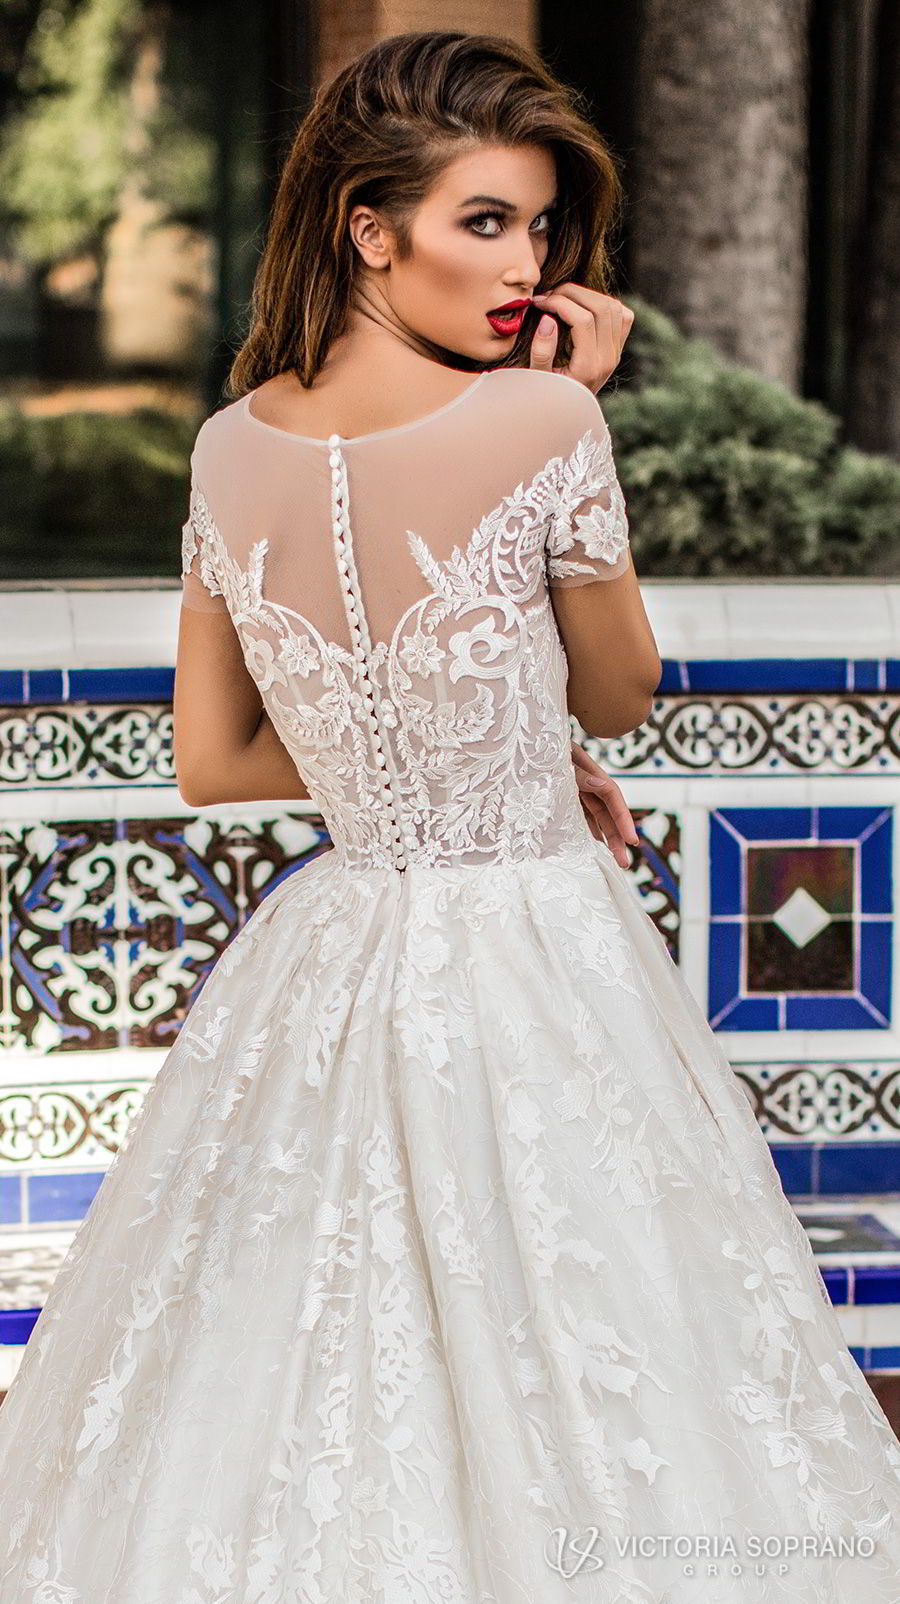 victoria soprano 2018 bridal short sleeves illusion jewel sweetheart neckline heavily embellished bodice romantic a  line wedding dress with pockets sheer lace back chapel train (vivian) zbv